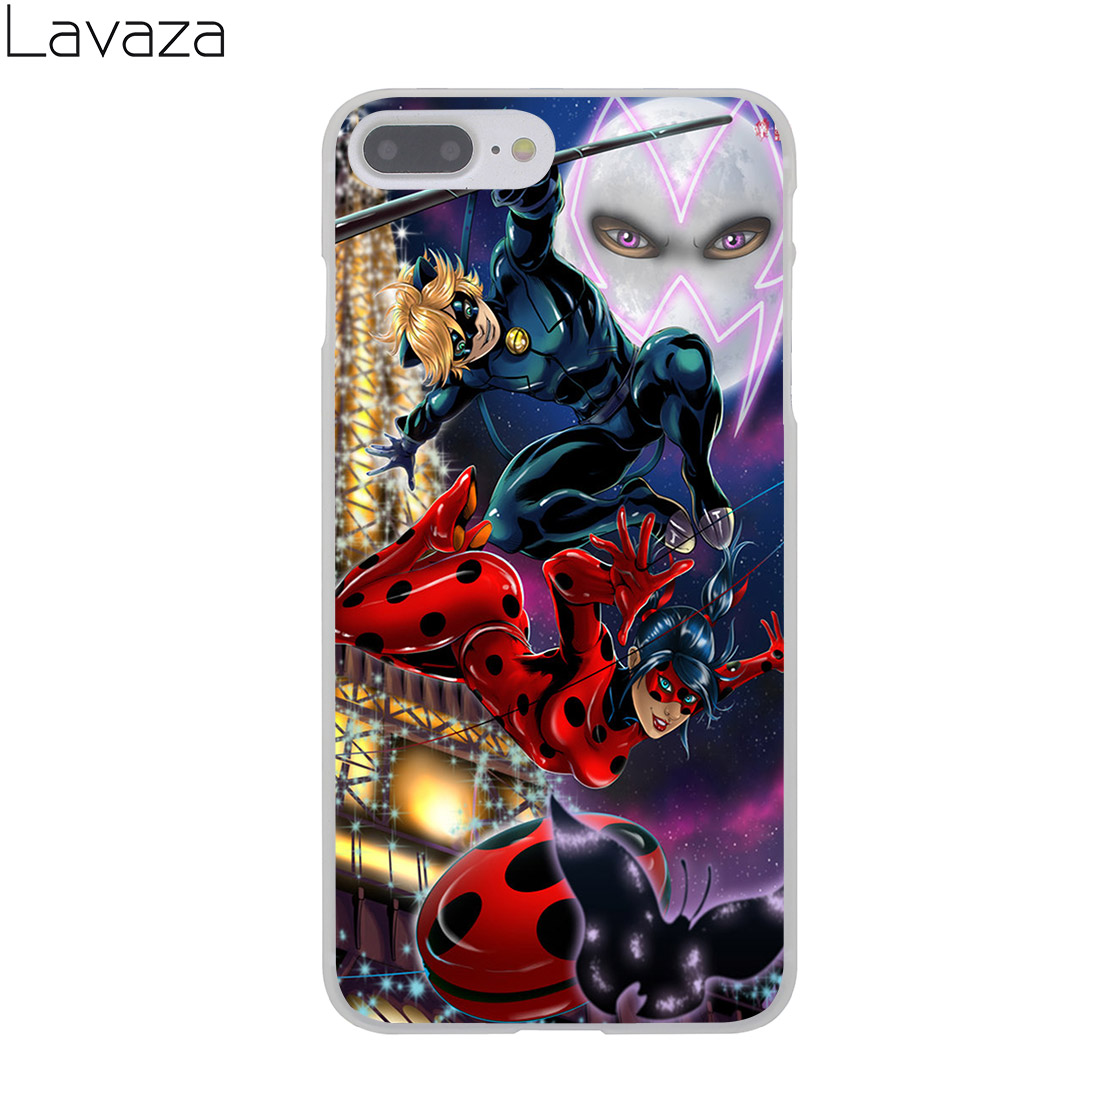 coque iphone 6 char